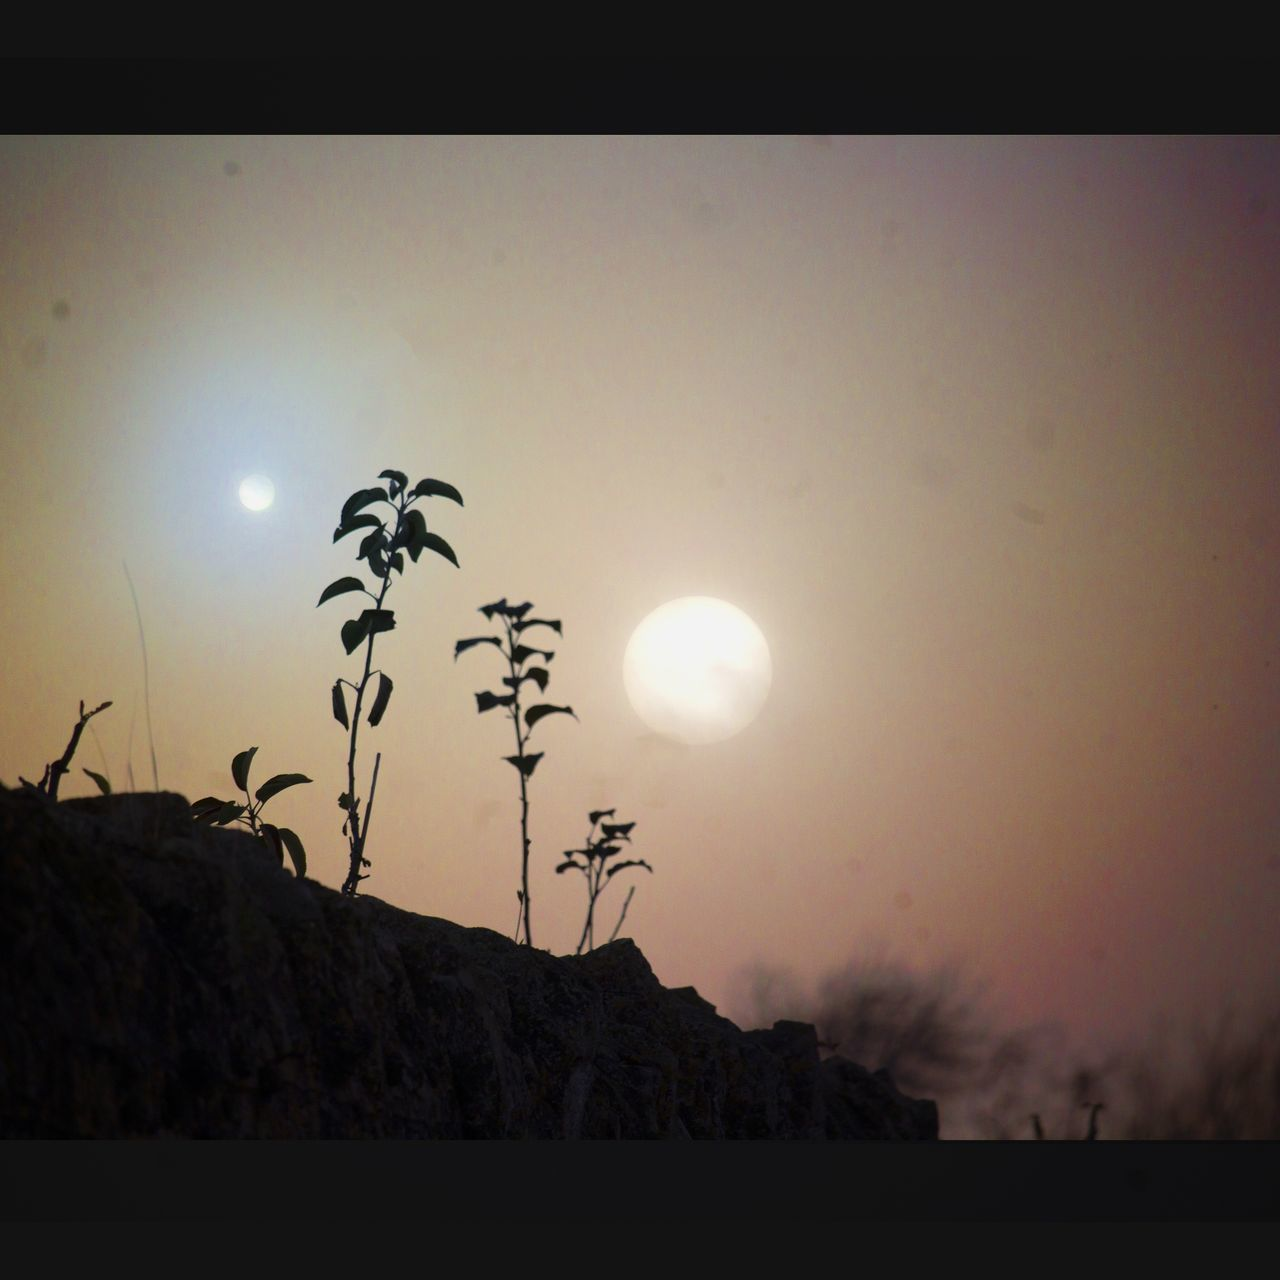 Sun Tree Moon Sky No People Outdoors Nature Rural Edgelands Edit Dream Nostalgia Cloud - Sky Scifi Dreamlike Composite Occult Moody Sky Memory Art Dreams Full Moon Sunset Silhouette Animals In The Wild